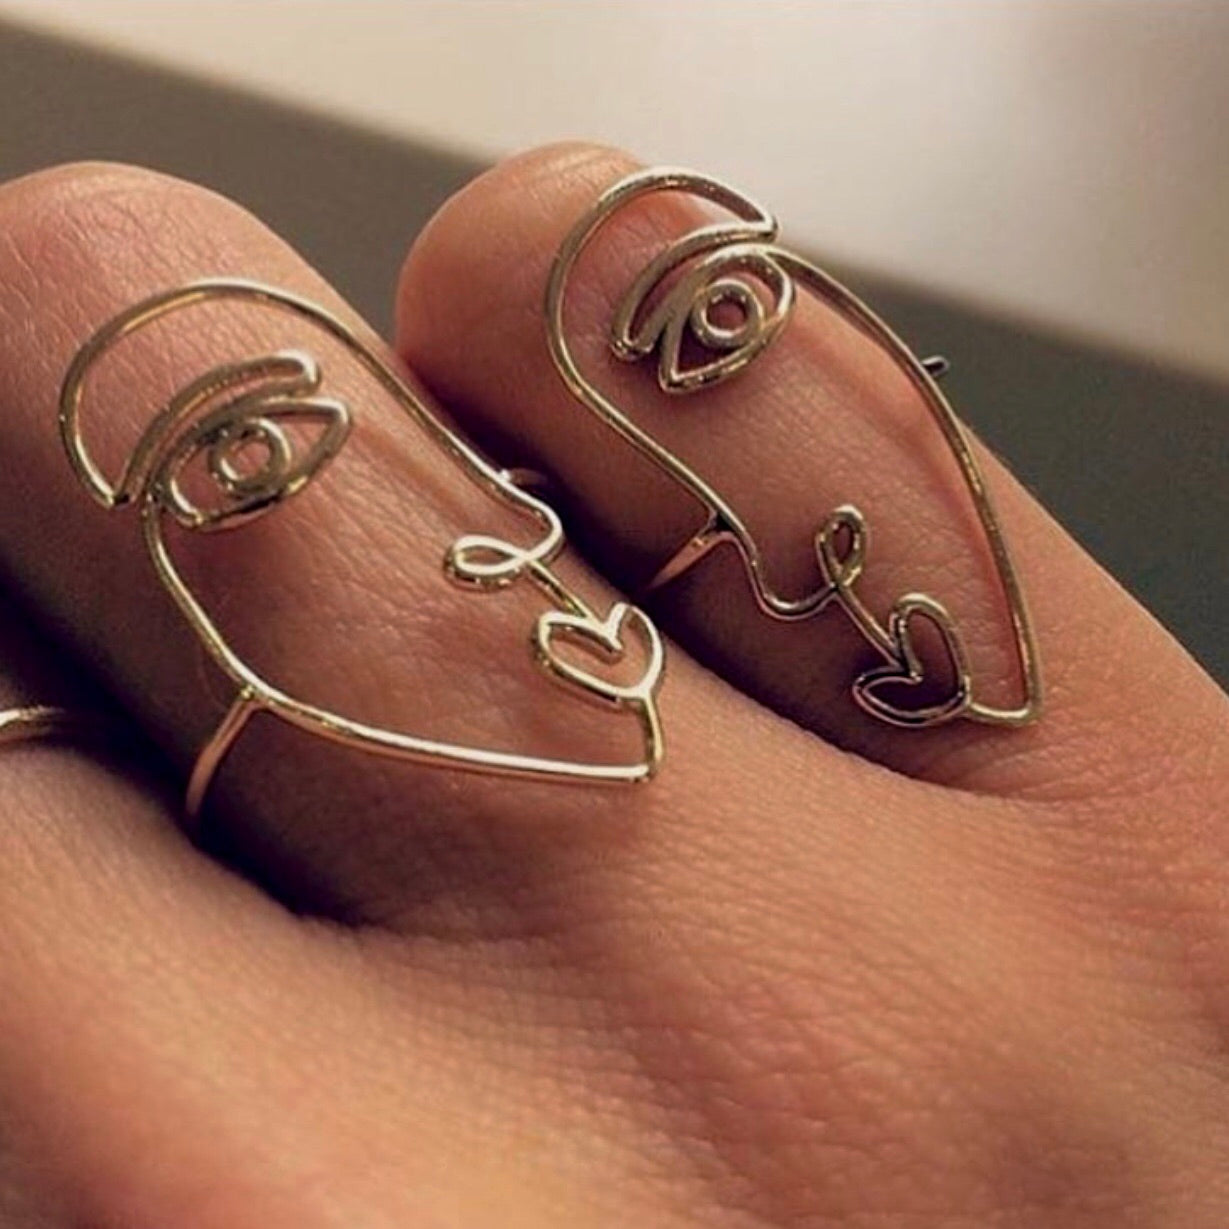 knuckle sheekgeekchic human jewelry piece set metal rings fingers hollow women new alloy for products fashion ethnic gift face